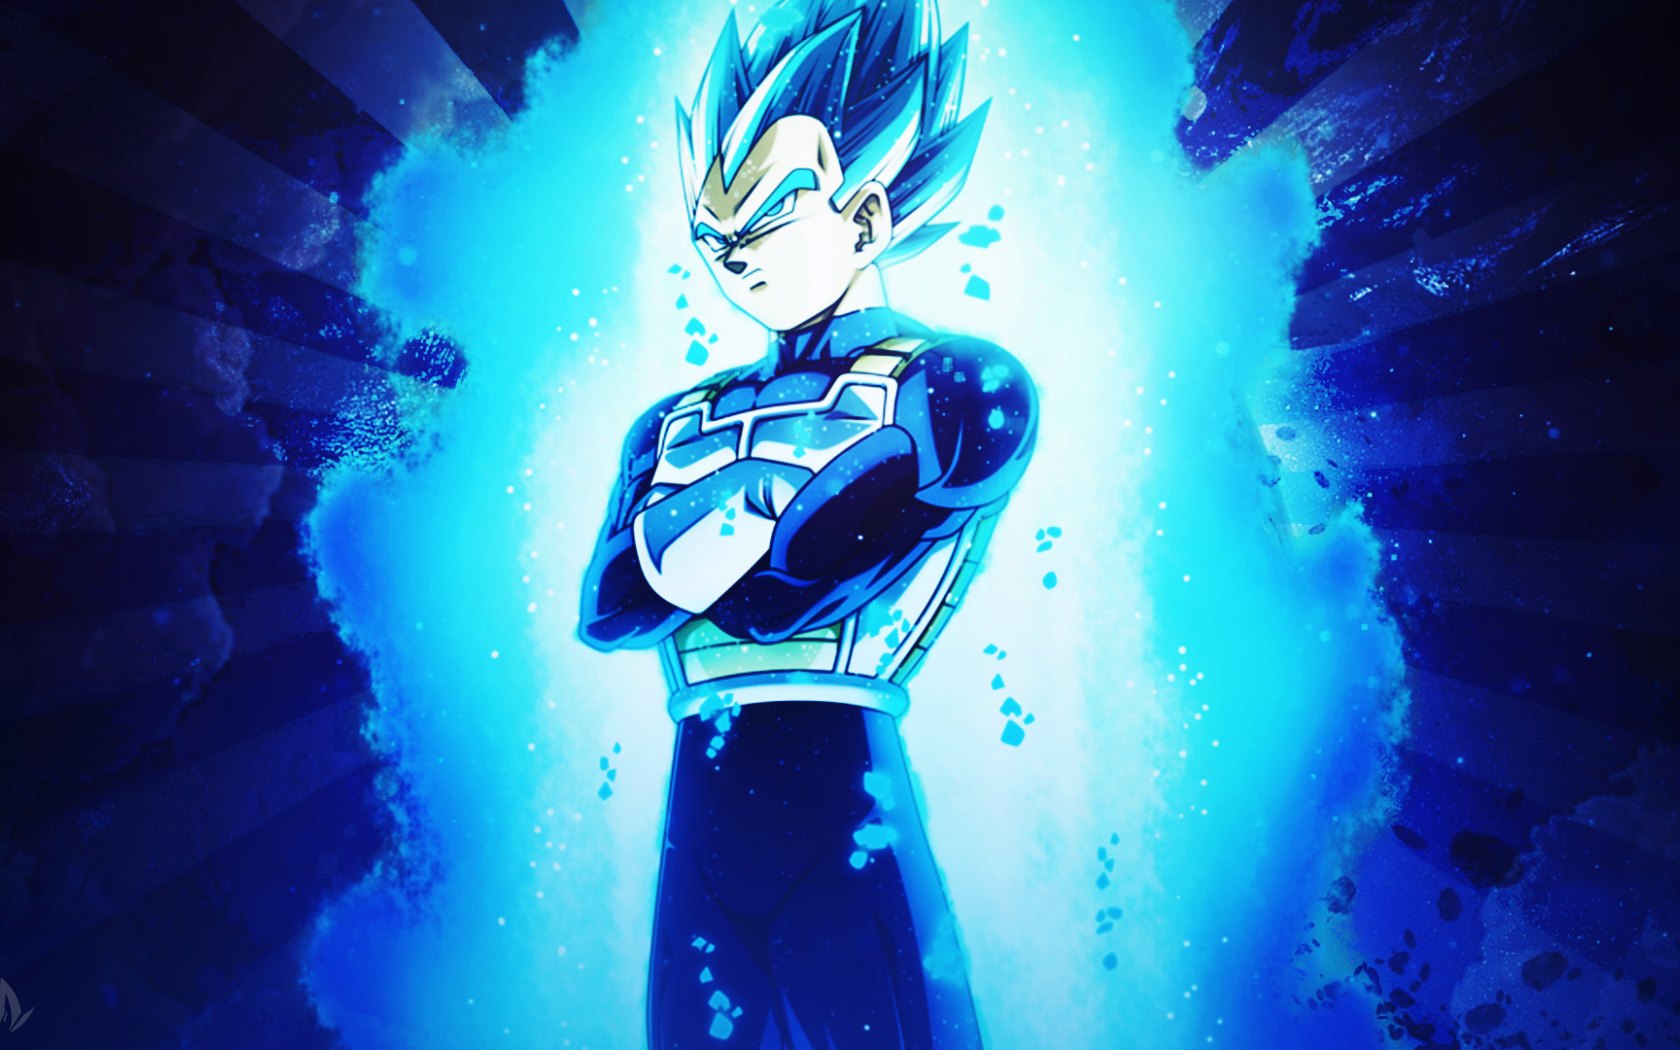 Free Download Ssgss Vegeta Wallpaper 70 Images 1920x1080 For